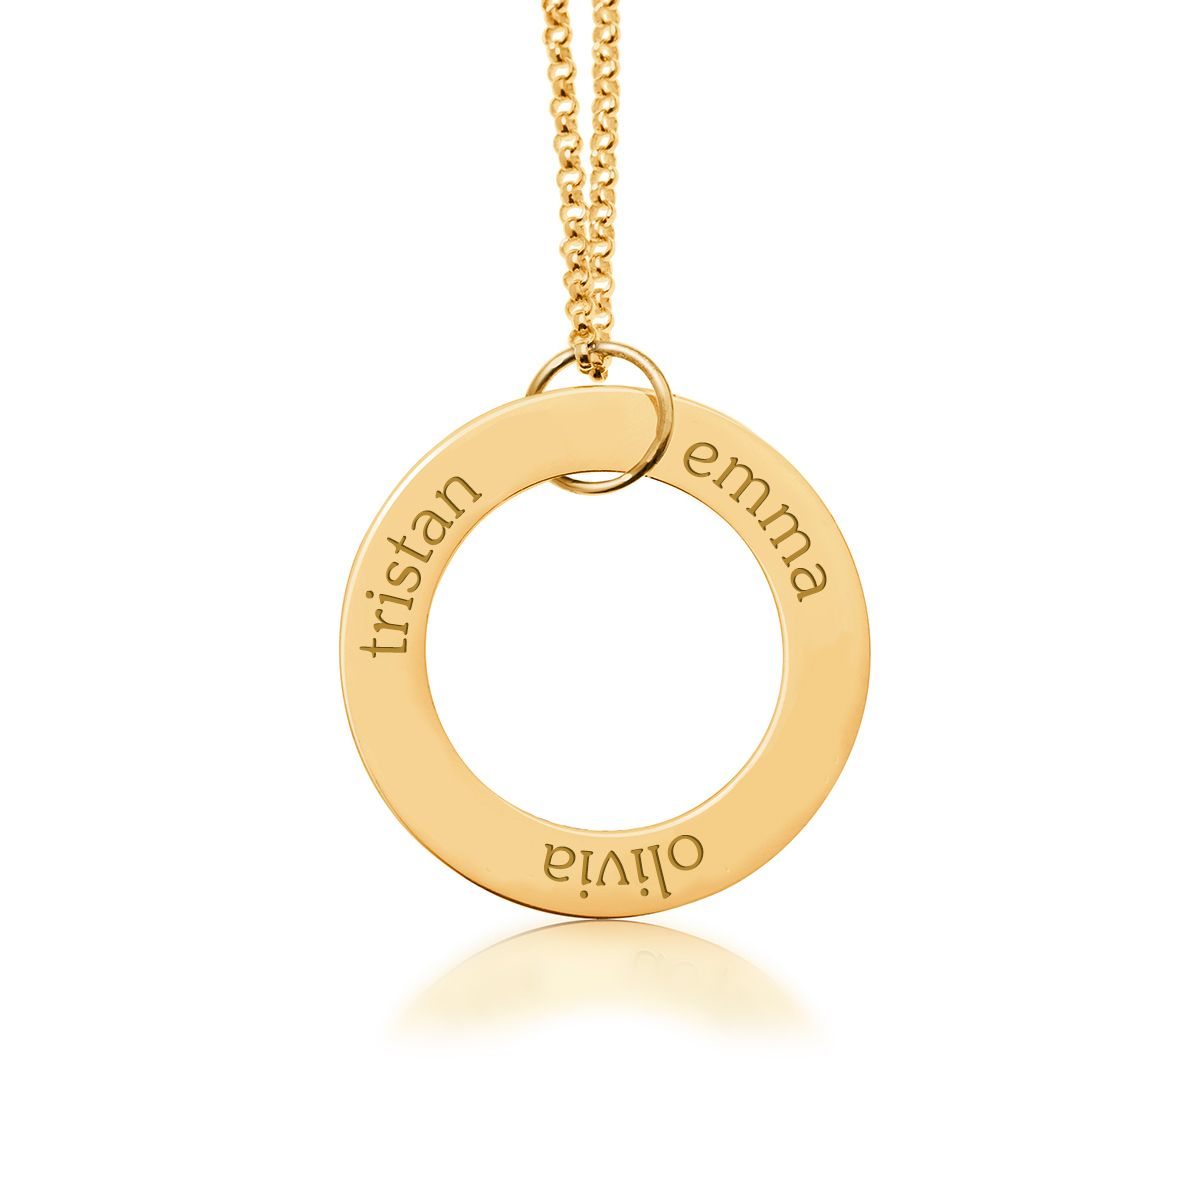 New mom necklace engraved circle pendant with 3 names mommy new mom necklace engraved circle pendant with 3 names gold i tiny tags aloadofball Choice Image